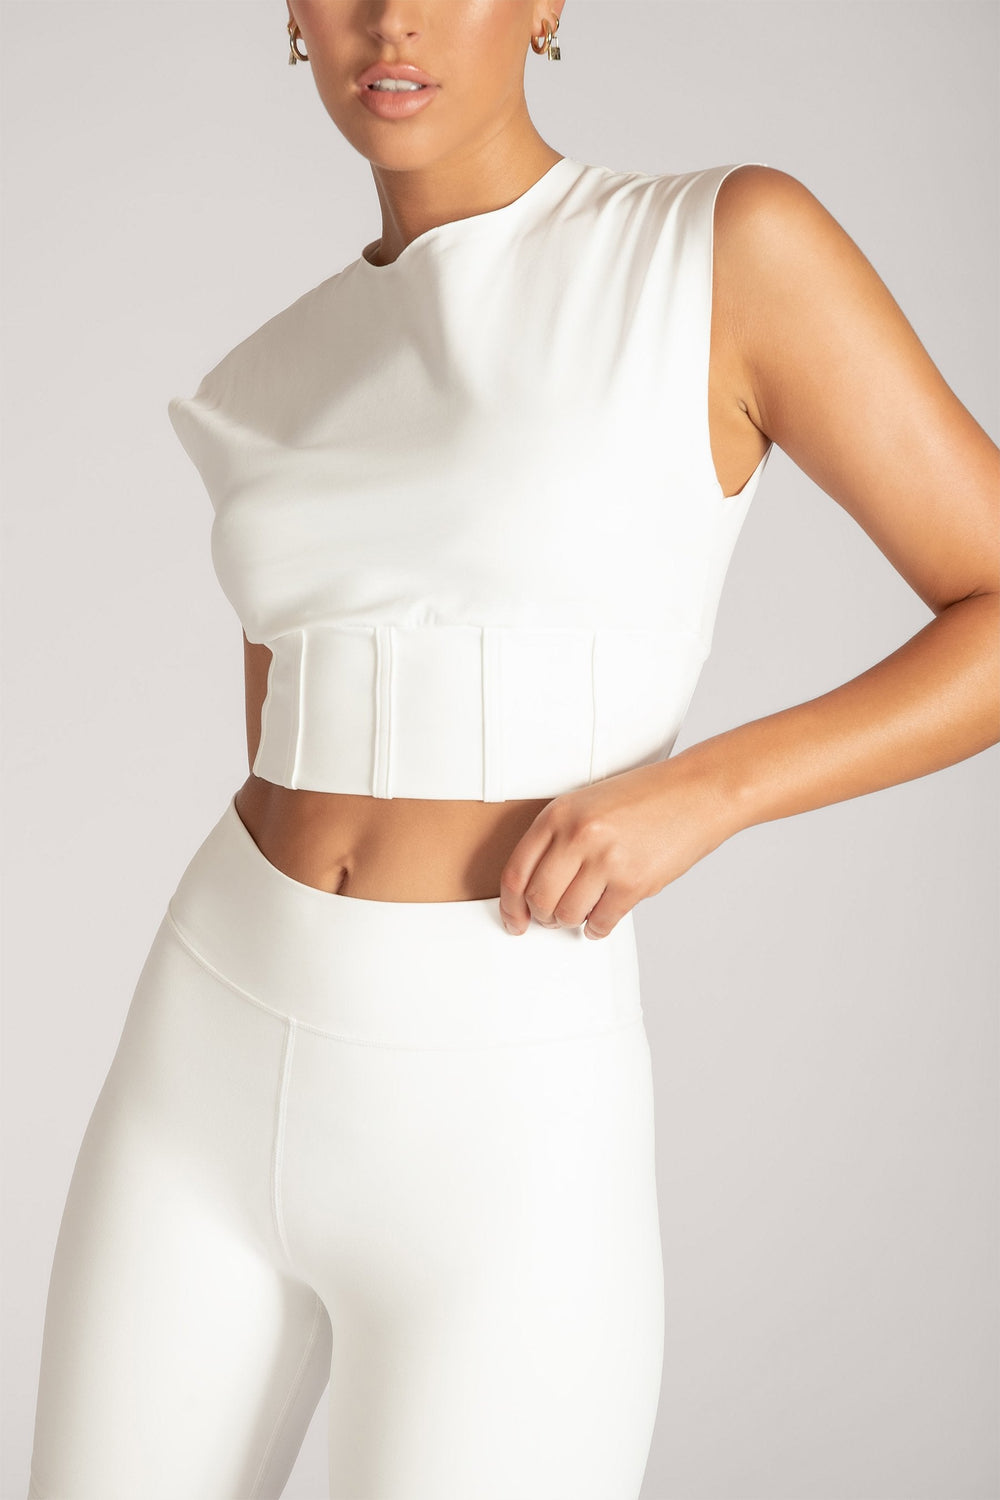 Hestia Panelled Sleeveless Crop Top - White - MESHKI ?id=16083117146187